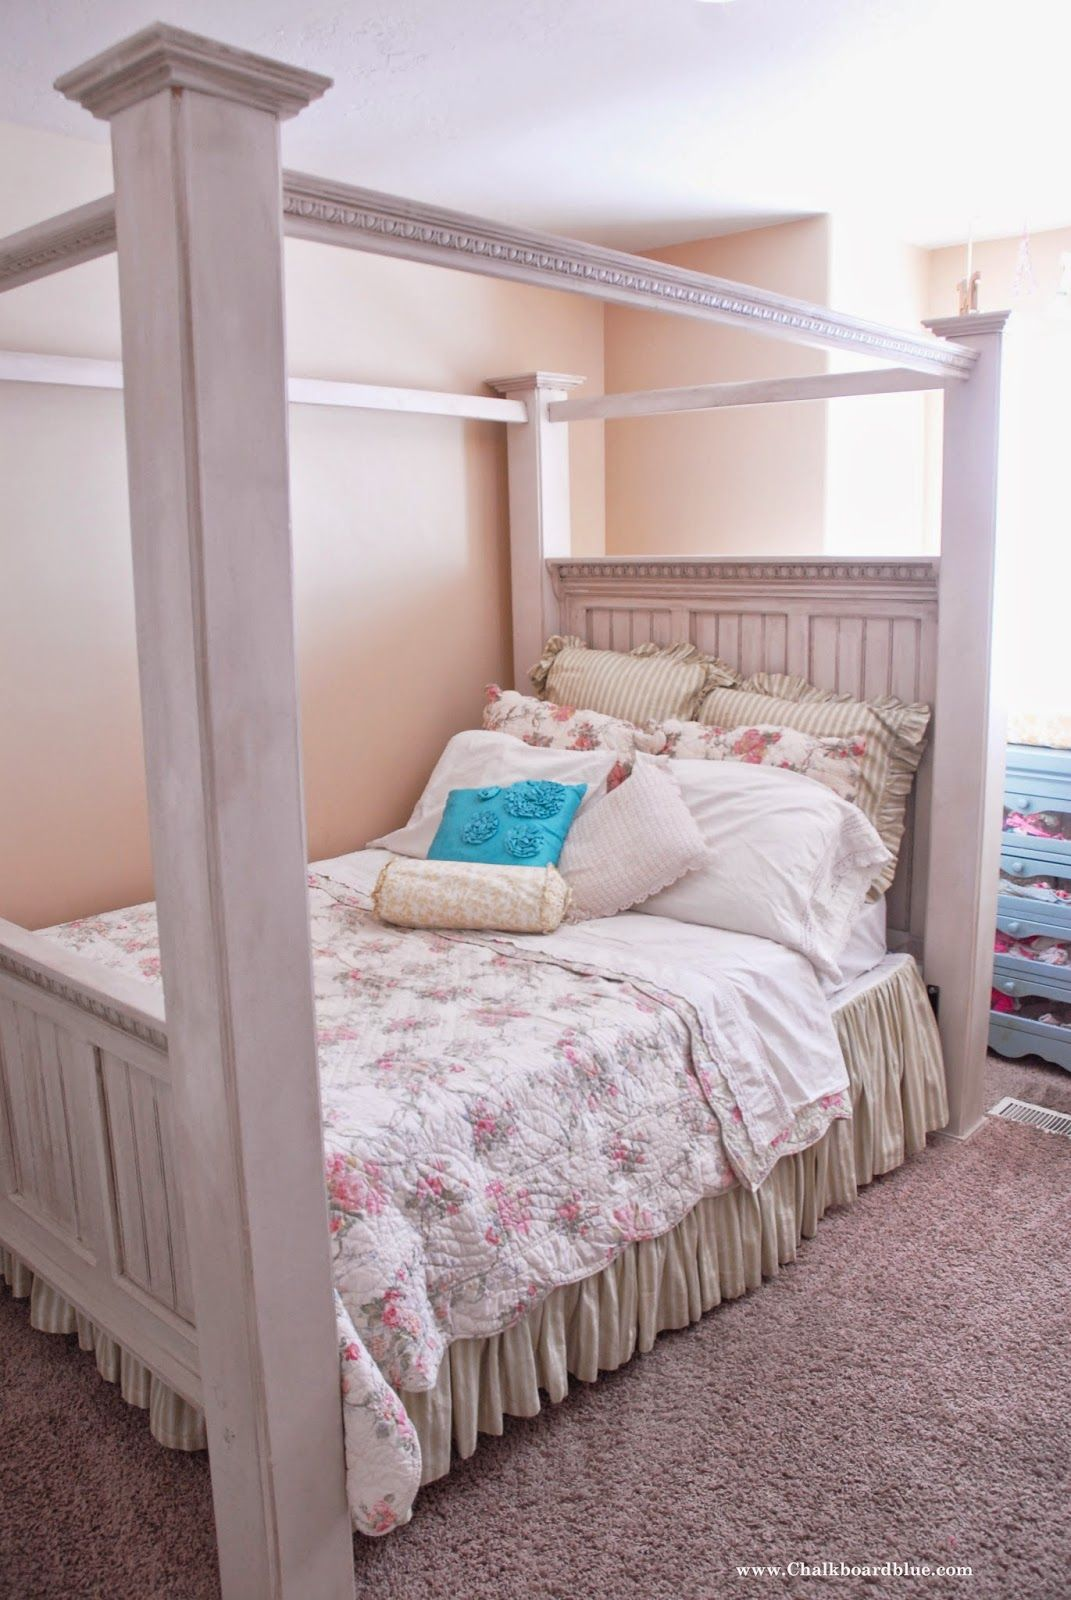 Girls Bed How To Build Tutorial Bed Murphy Bed